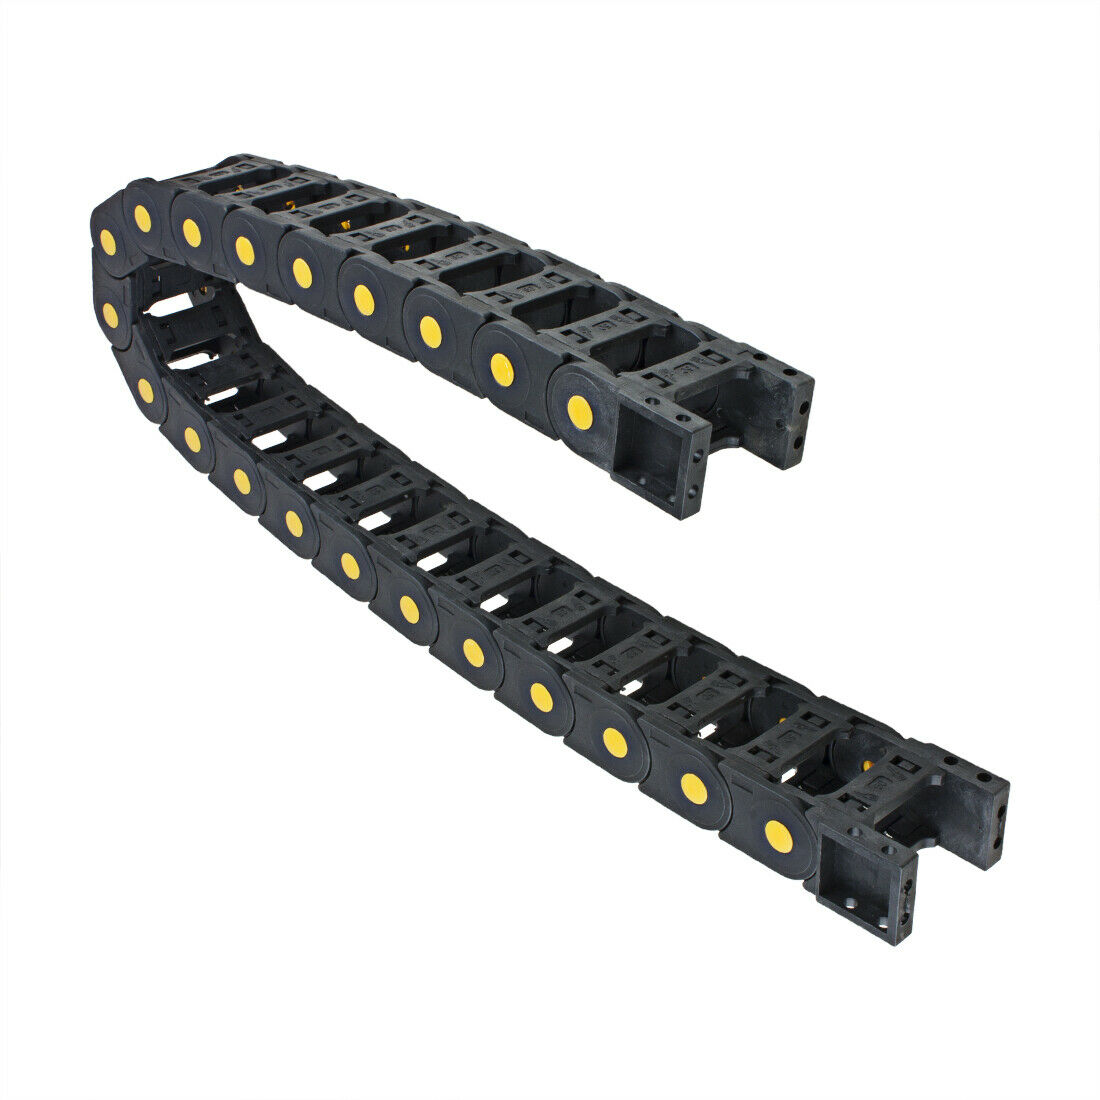 uxcell R55 25mm x 25mm Black Plastic Open Type Cable Wire Carrier Drag Chain 1M Length